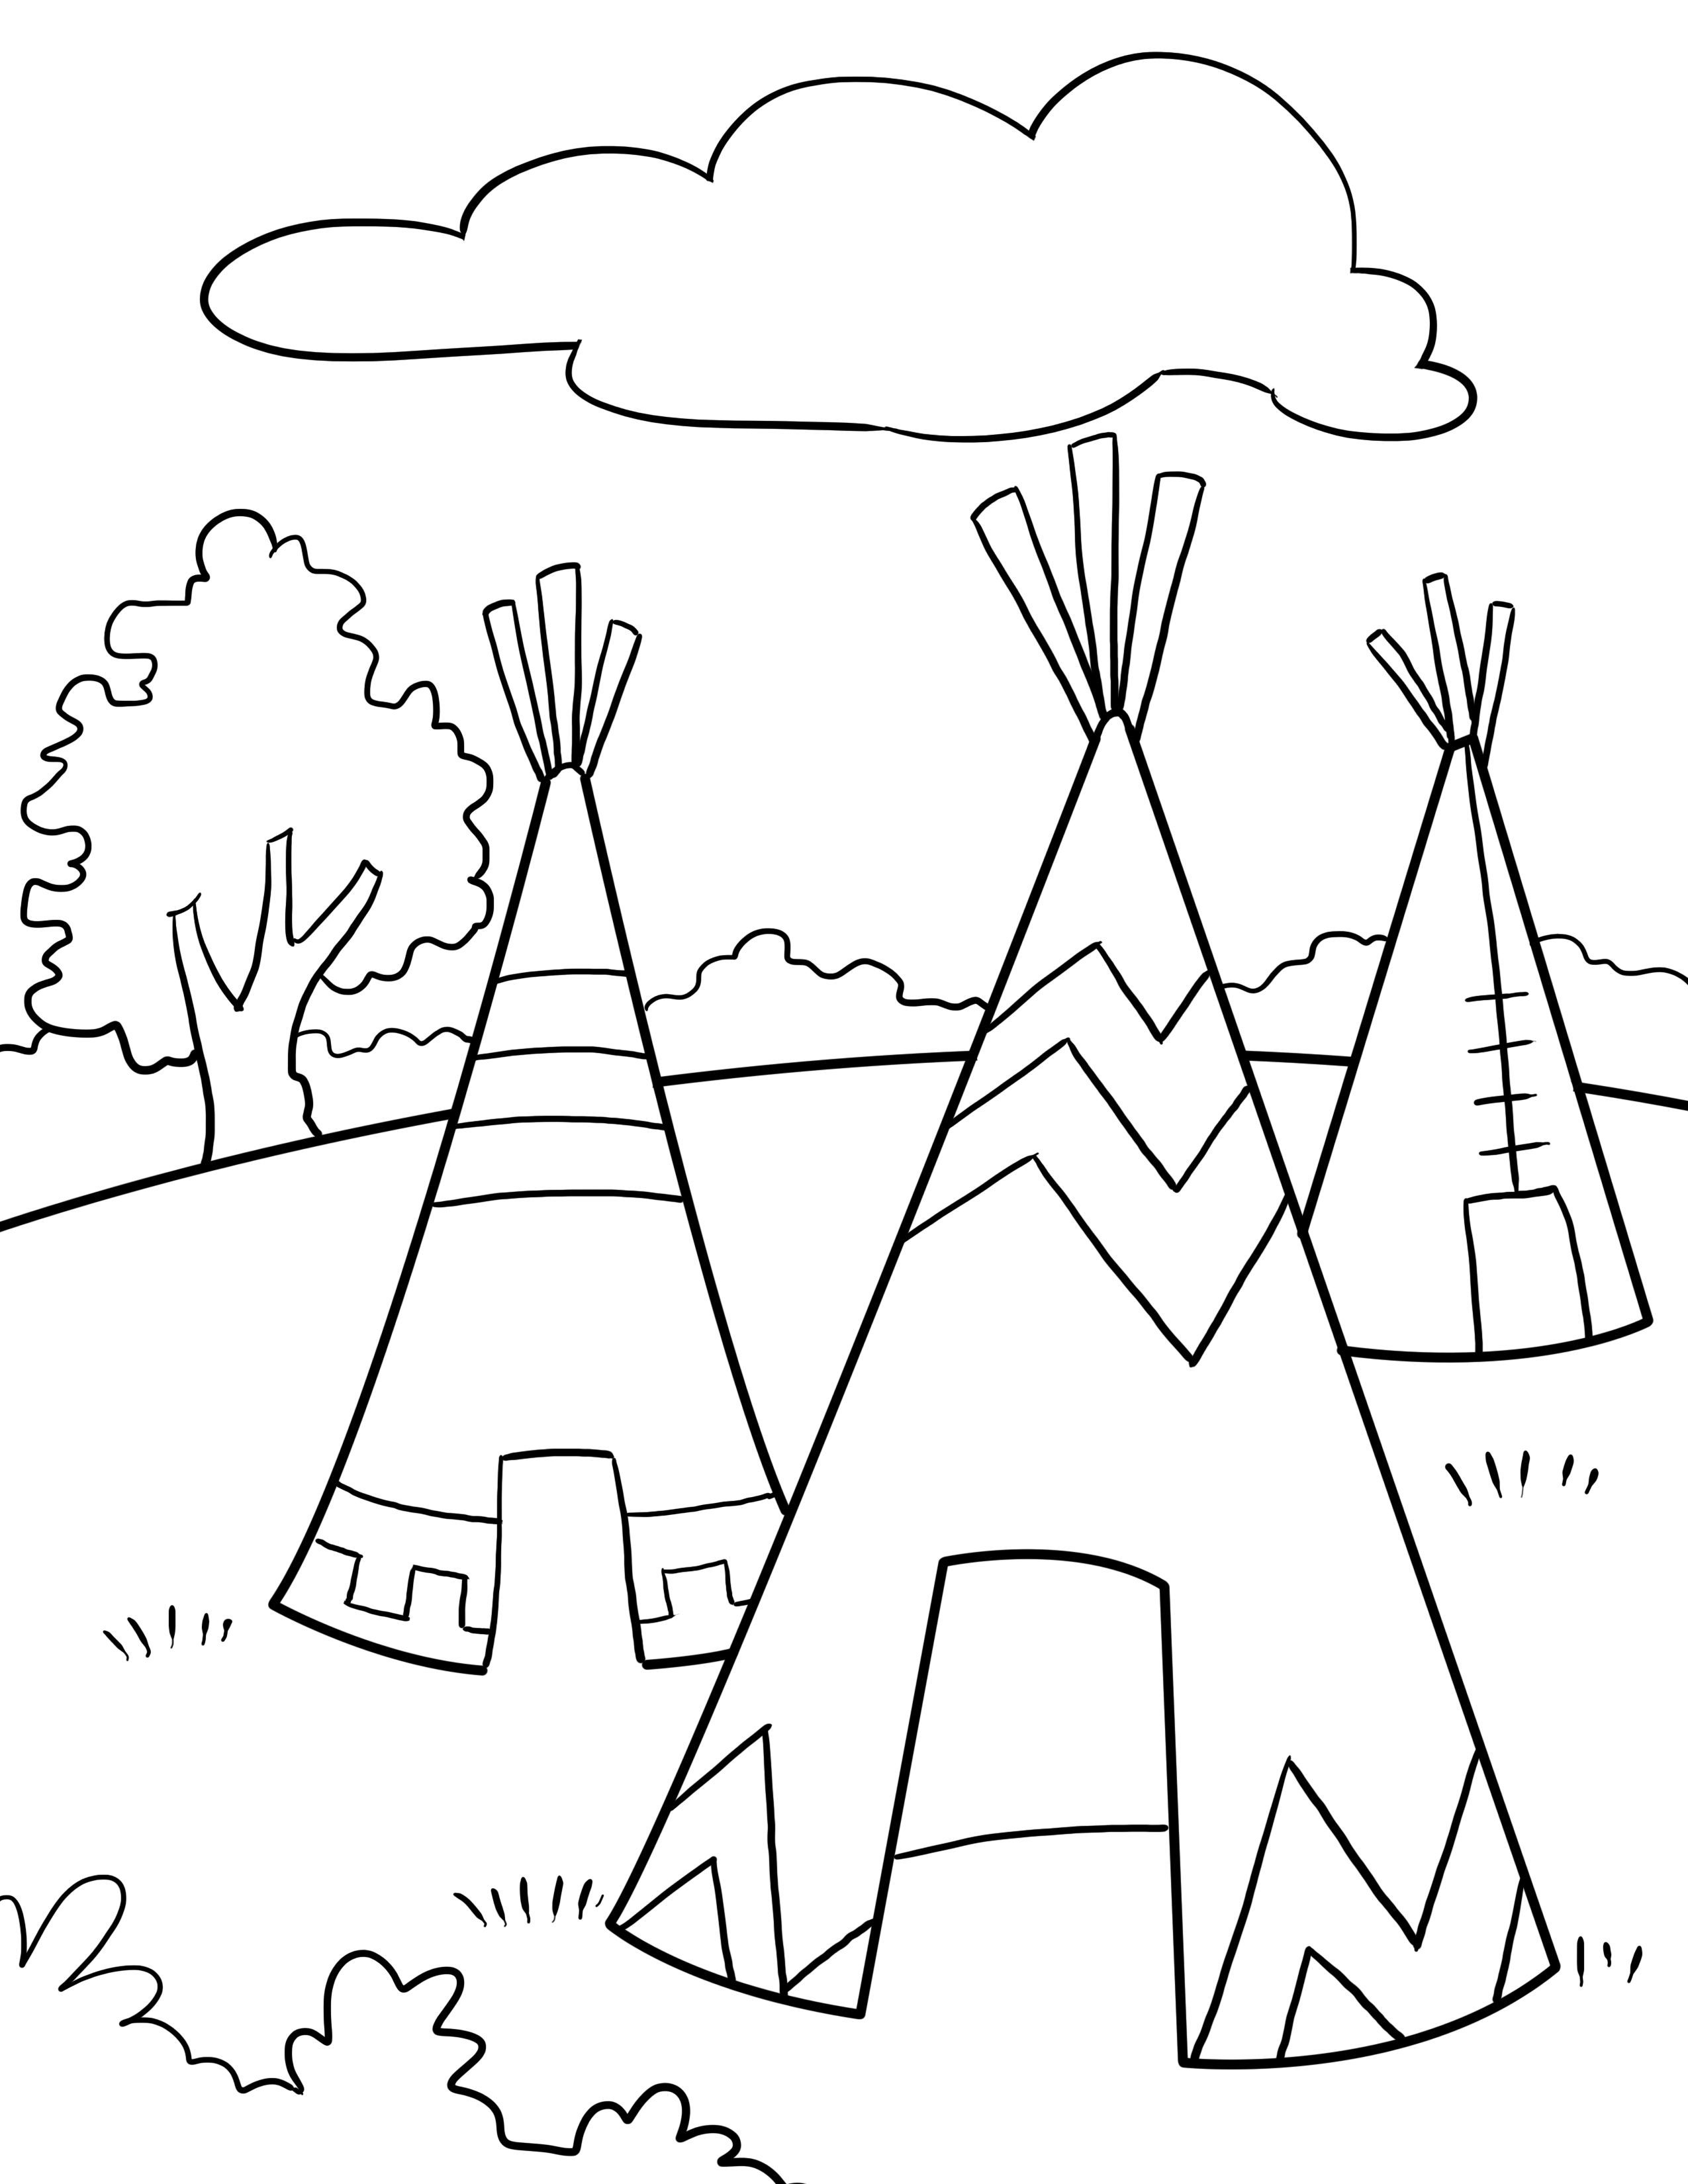 Indian Teepee Coloring Page Coloring Books Coloring Pages For Kids Coloring Pages